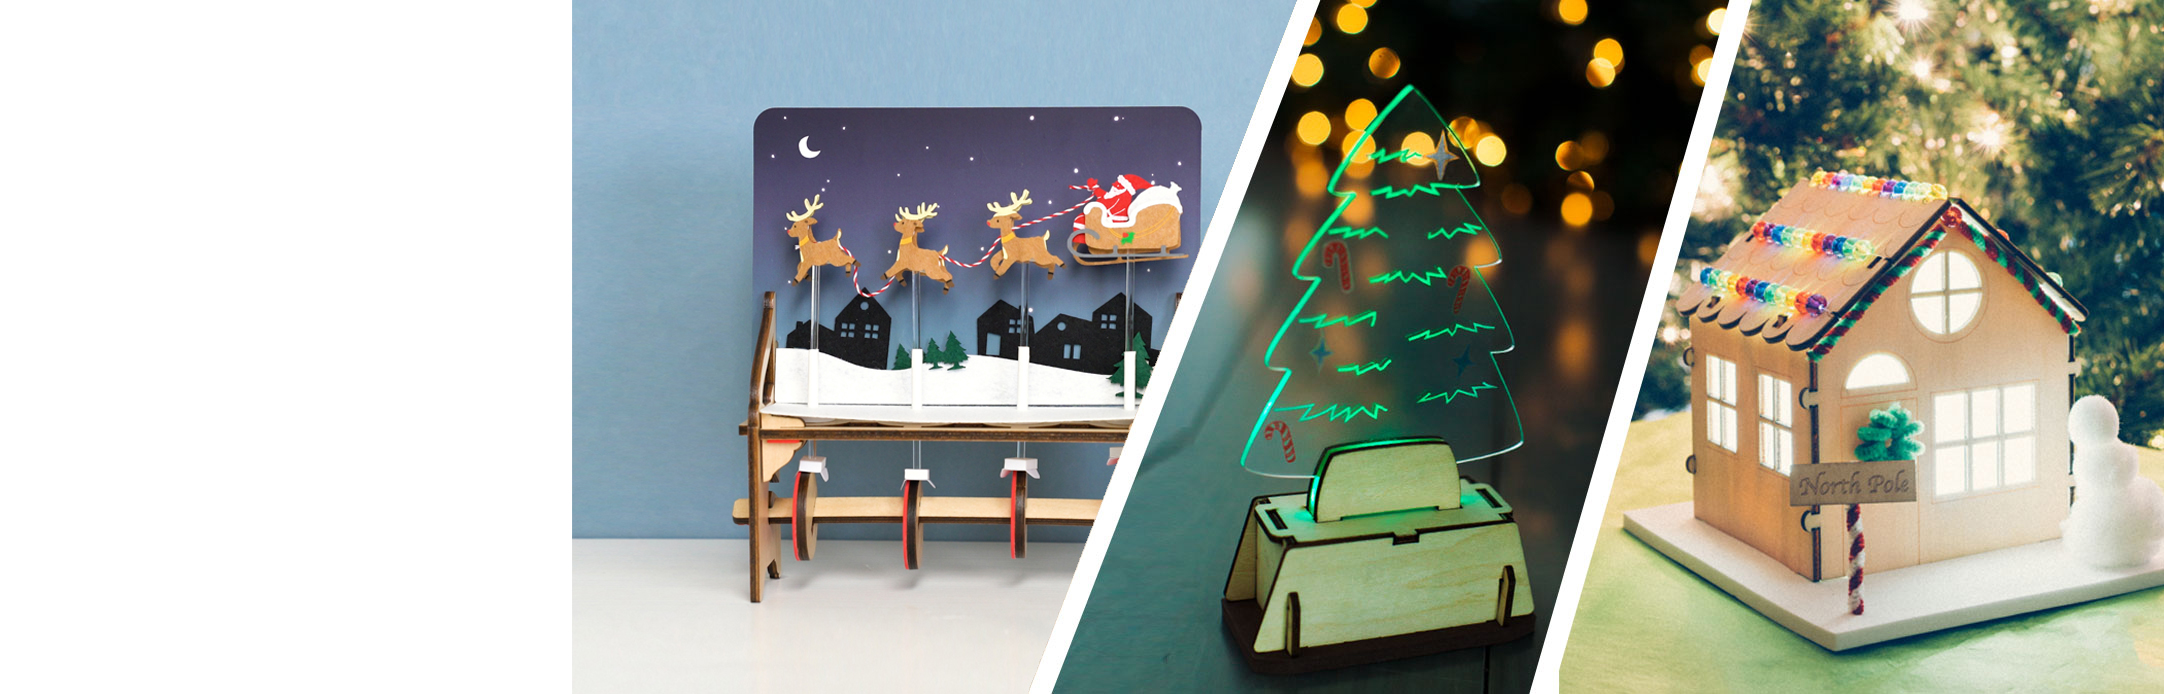 A collage of Holiday projects: UFO Costume, LED Holiday Luminary, and Santa's Light-Up Workshop.